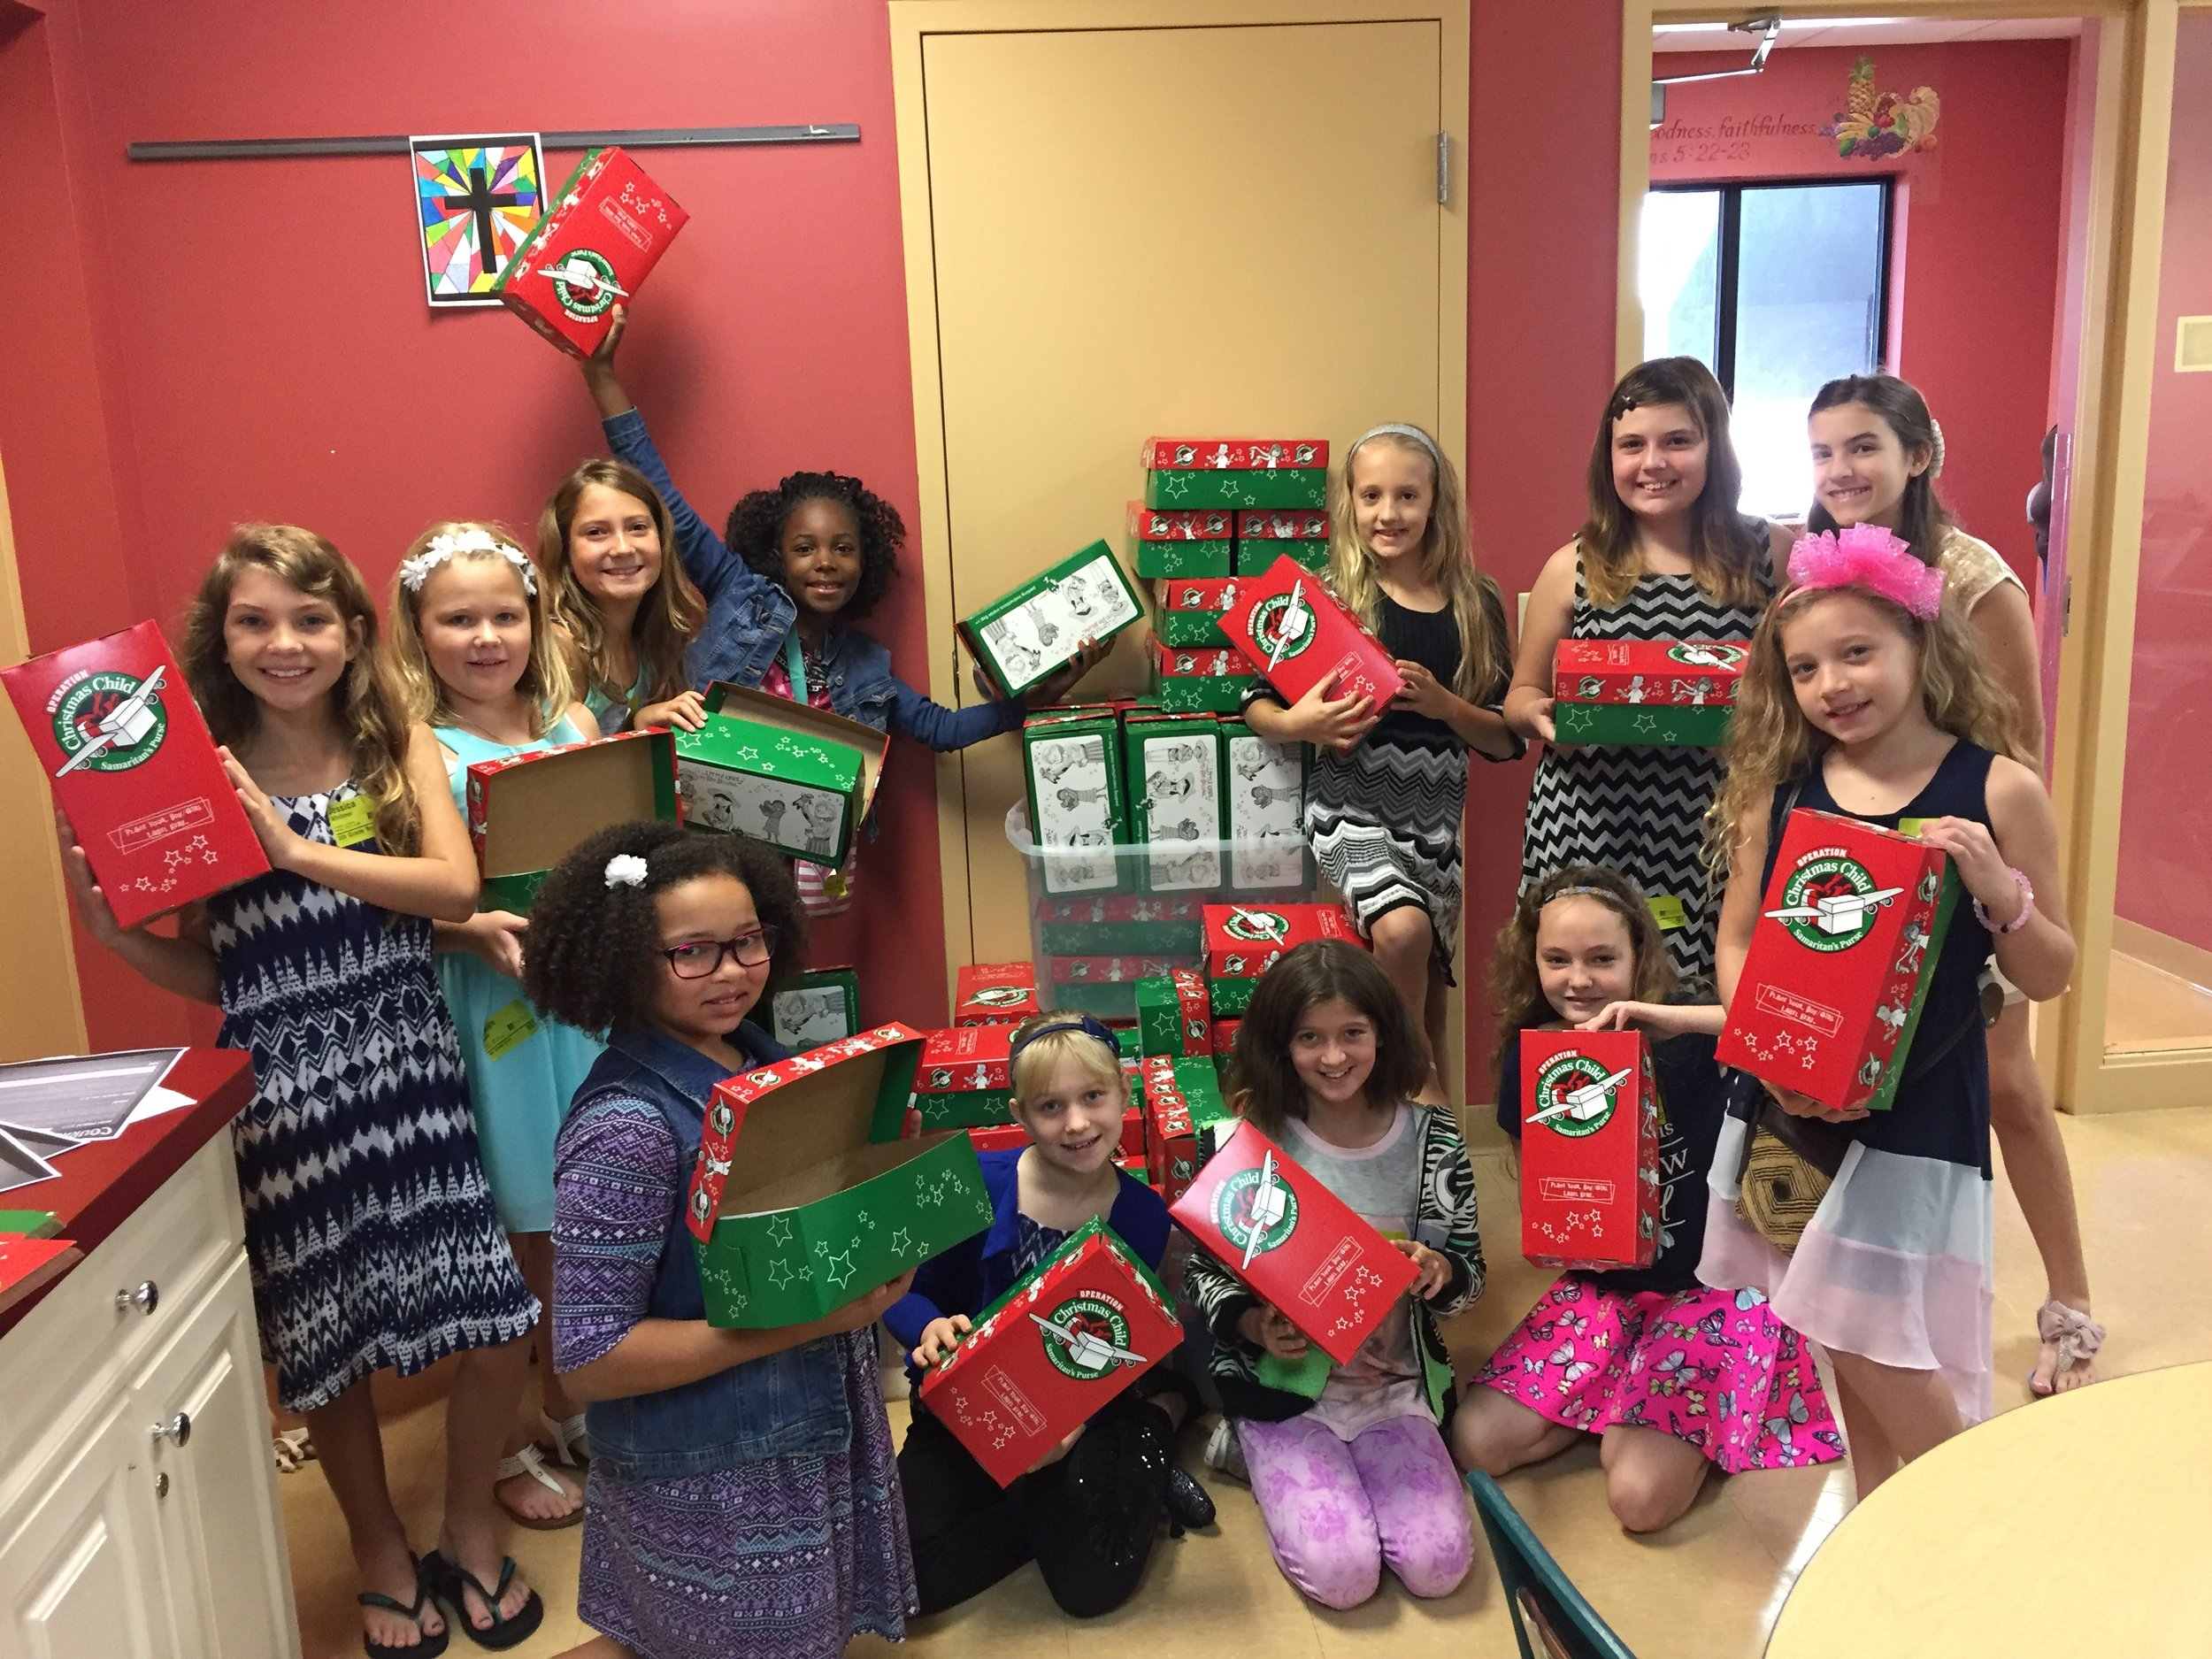 OPERATION CHRISTMAS CHILD SHOEBOXES - NOV. 12 - Operation Christmas Child Shoeboxes aredue back this day on the plaza. Thank you forparticipating this year!